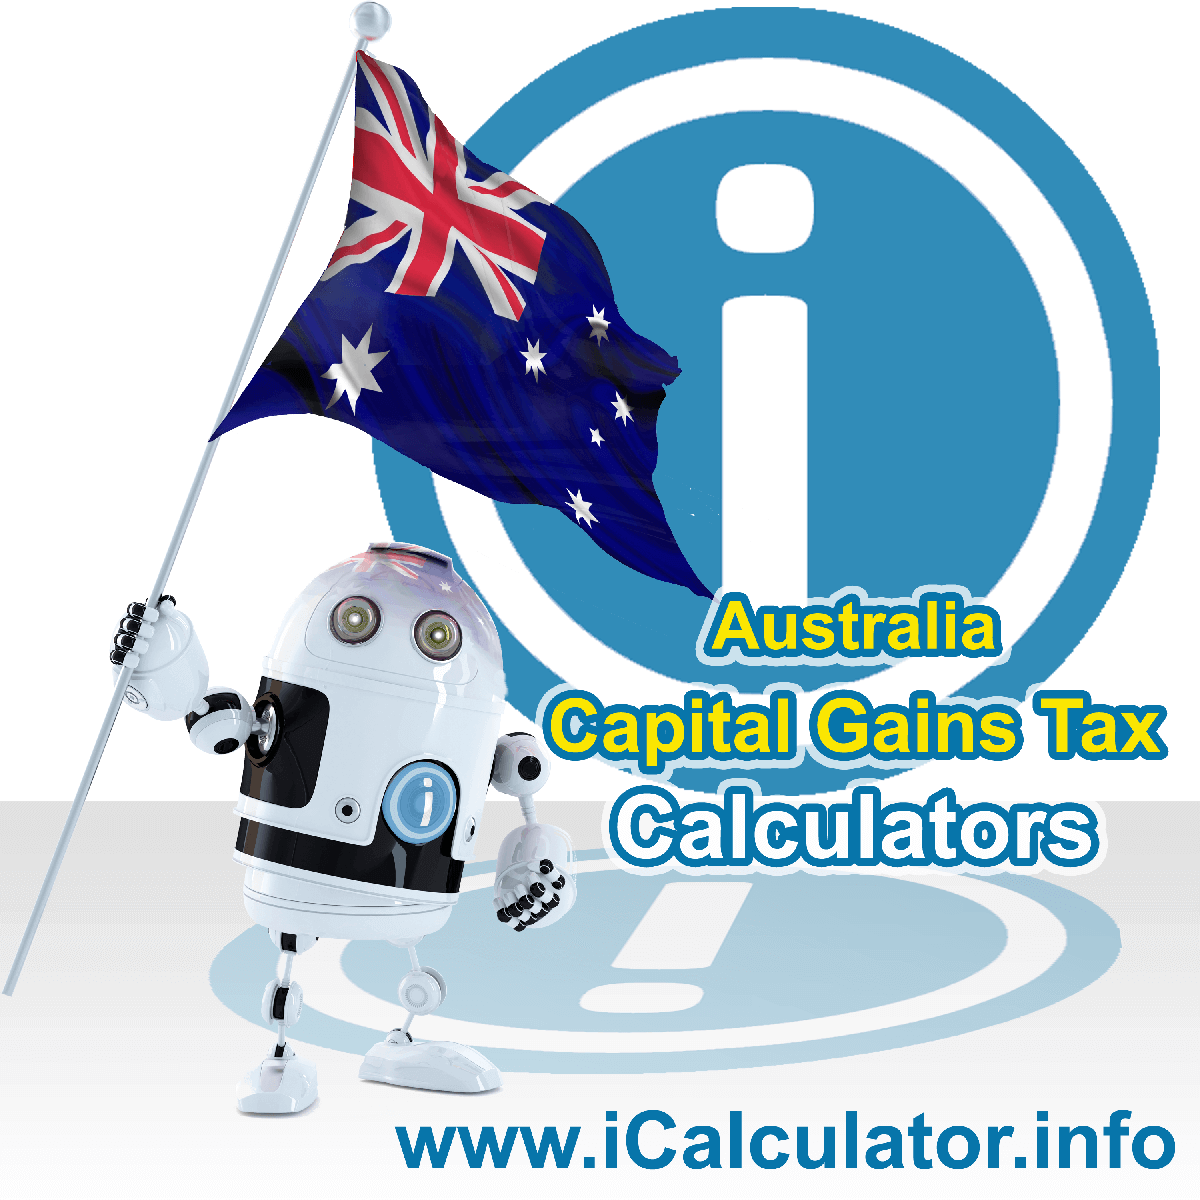 Australia Capital Gains Tax Calculator. This image shows the Australia flag and information relating to the capital gains tax formula used for calculating capital gains tax for individuals, corporations and small business in Australia using the Australia Capital Gains Tax Calculator in 2021